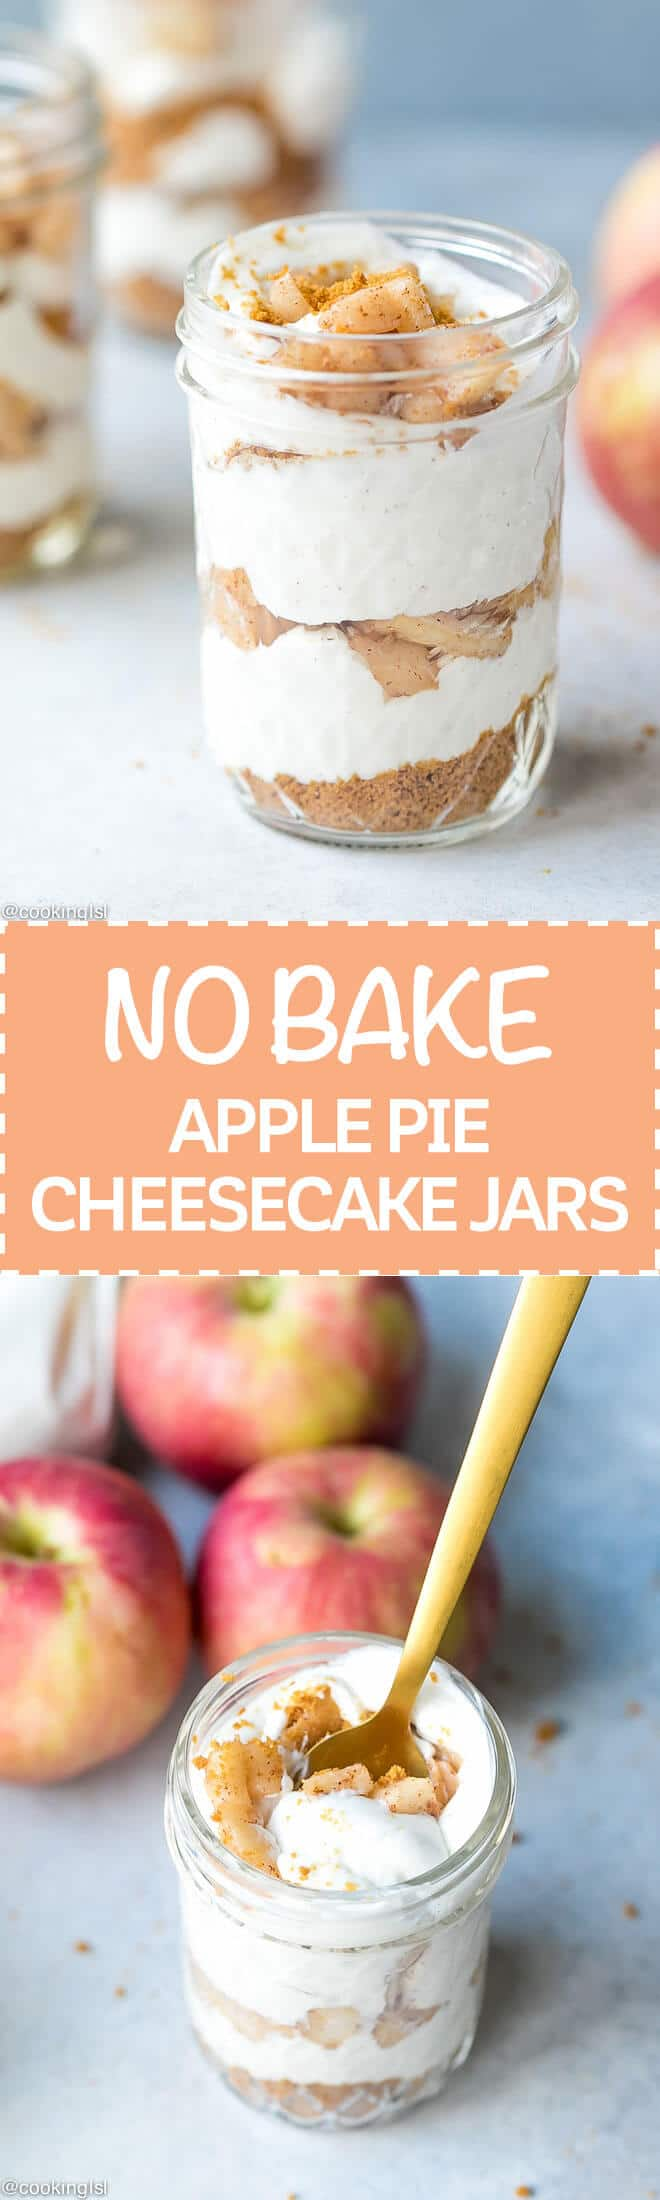 Healthy No Bake Apple Pie Cheesecake In A Jar Recipe - the perfect quick to make and super delicious sweet treat. Great for fall, made with a few simple ingredients in under 15 minutes. Store and serve it in a small mason jar for portion control and convenience.